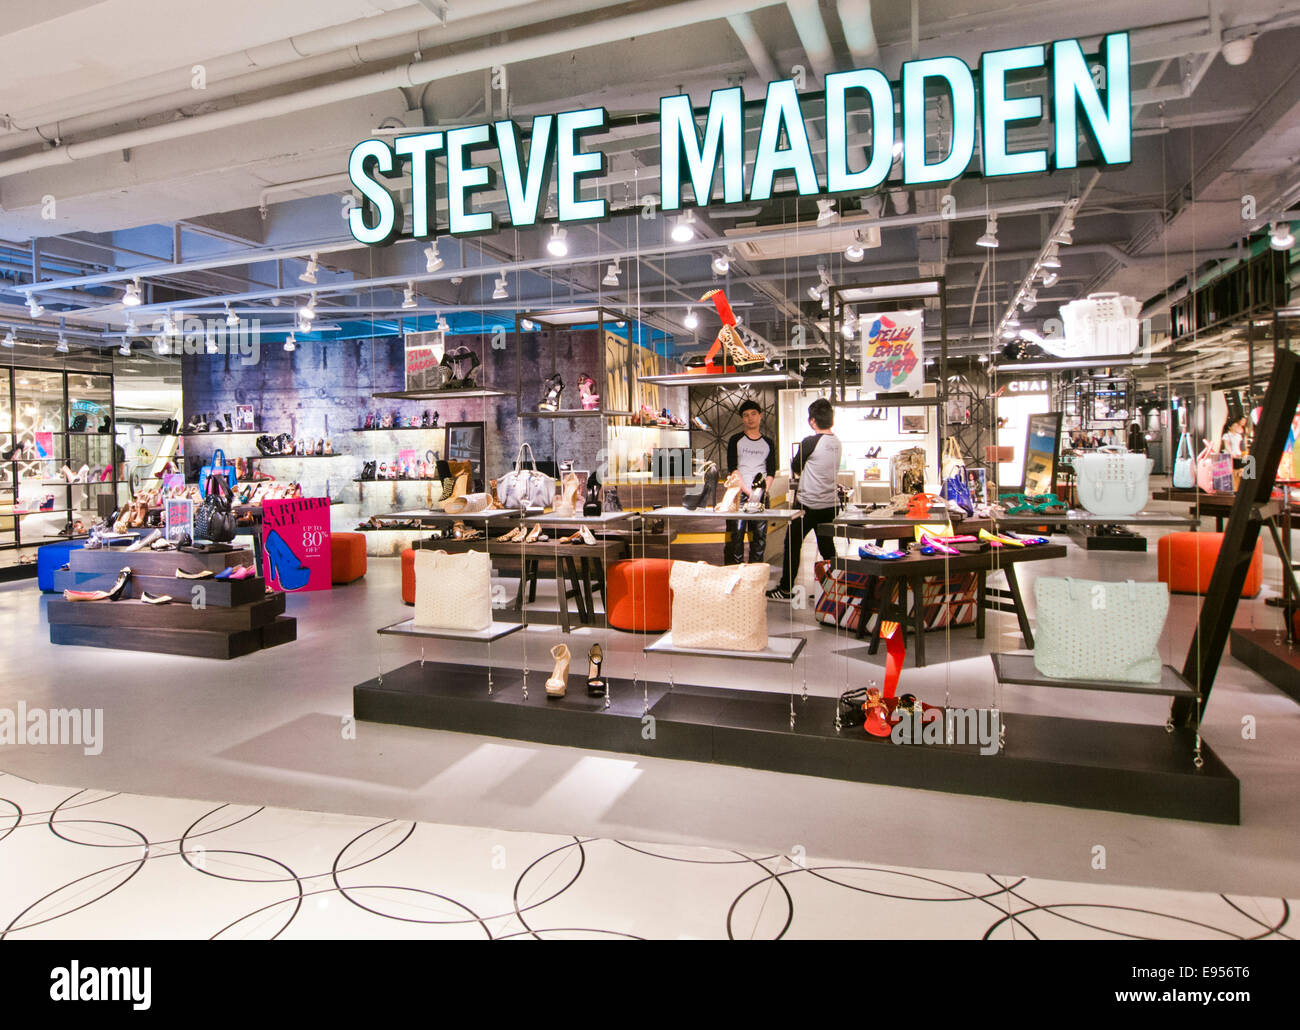 86f325264c0 Madden Stock Photos   Madden Stock Images - Alamy